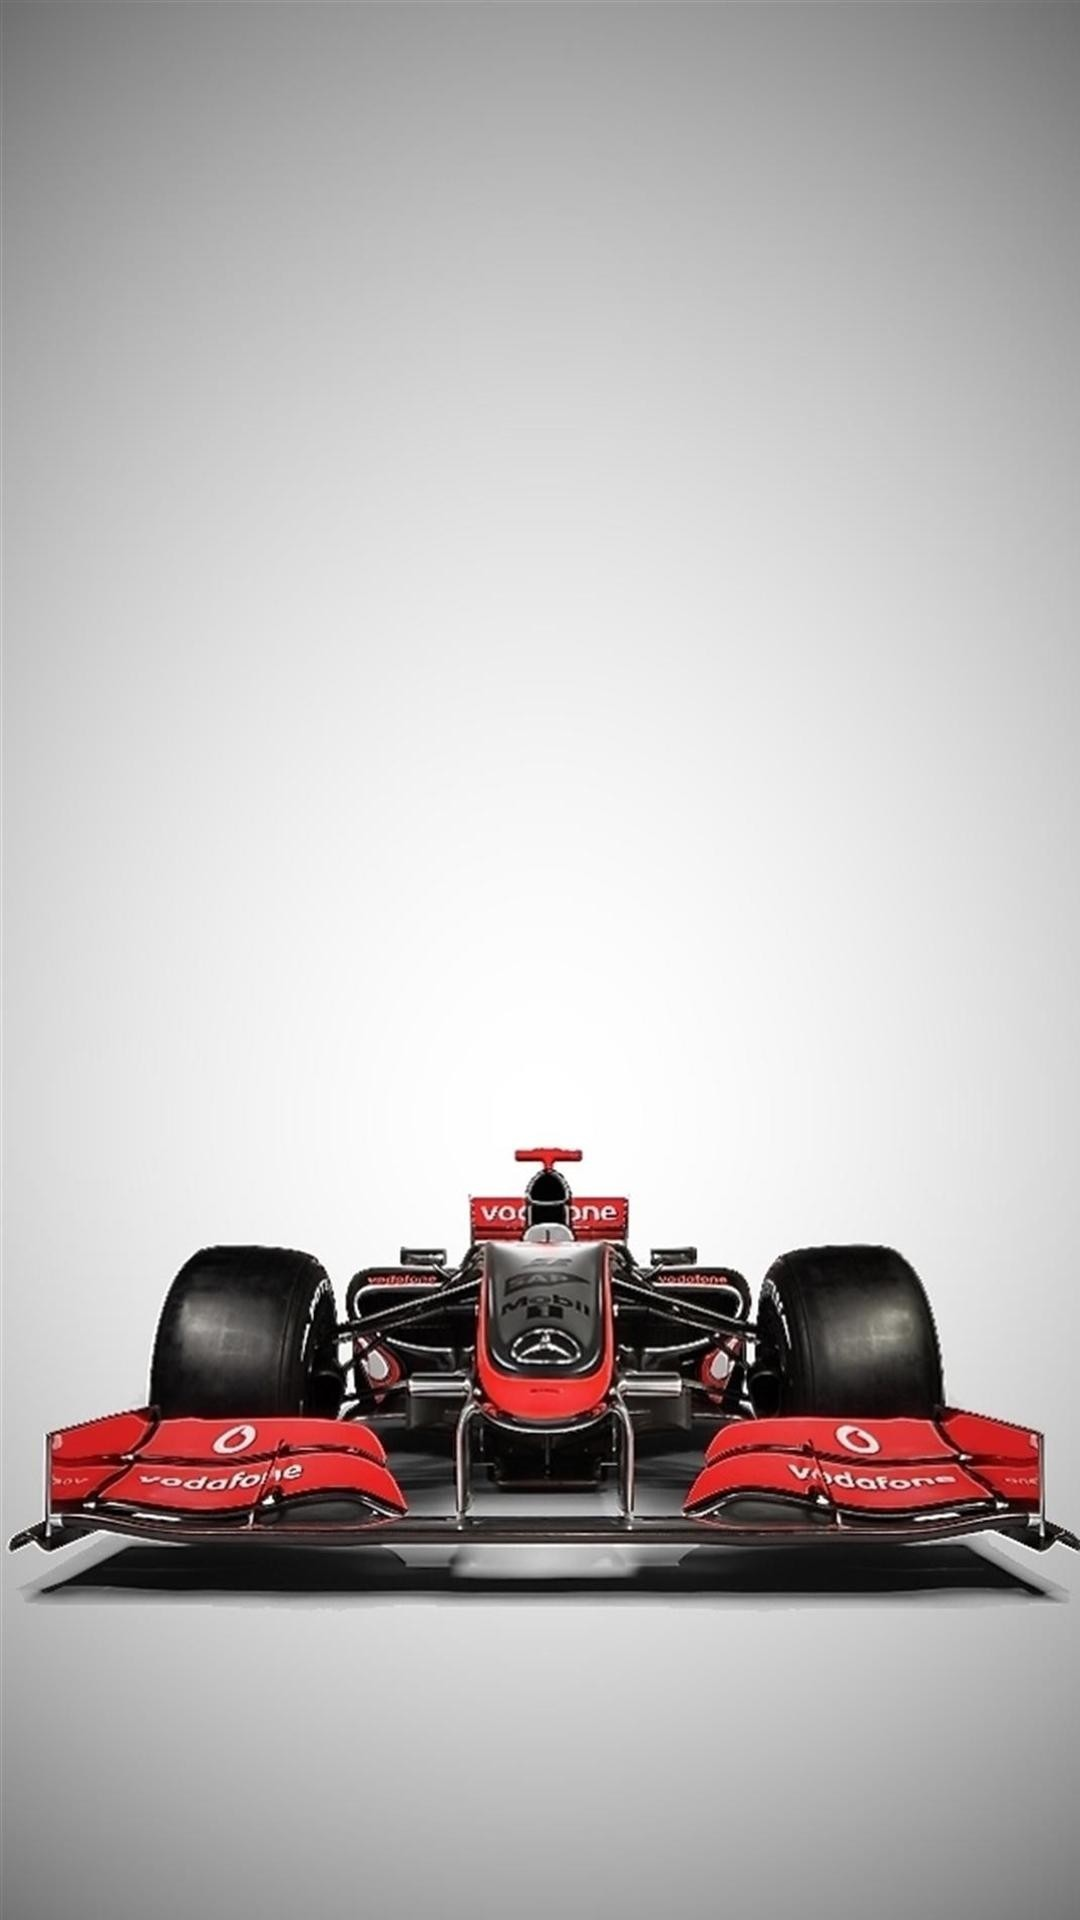 Formula 1 wallpapers hd 77 images - Racing cars wallpapers for mobile ...